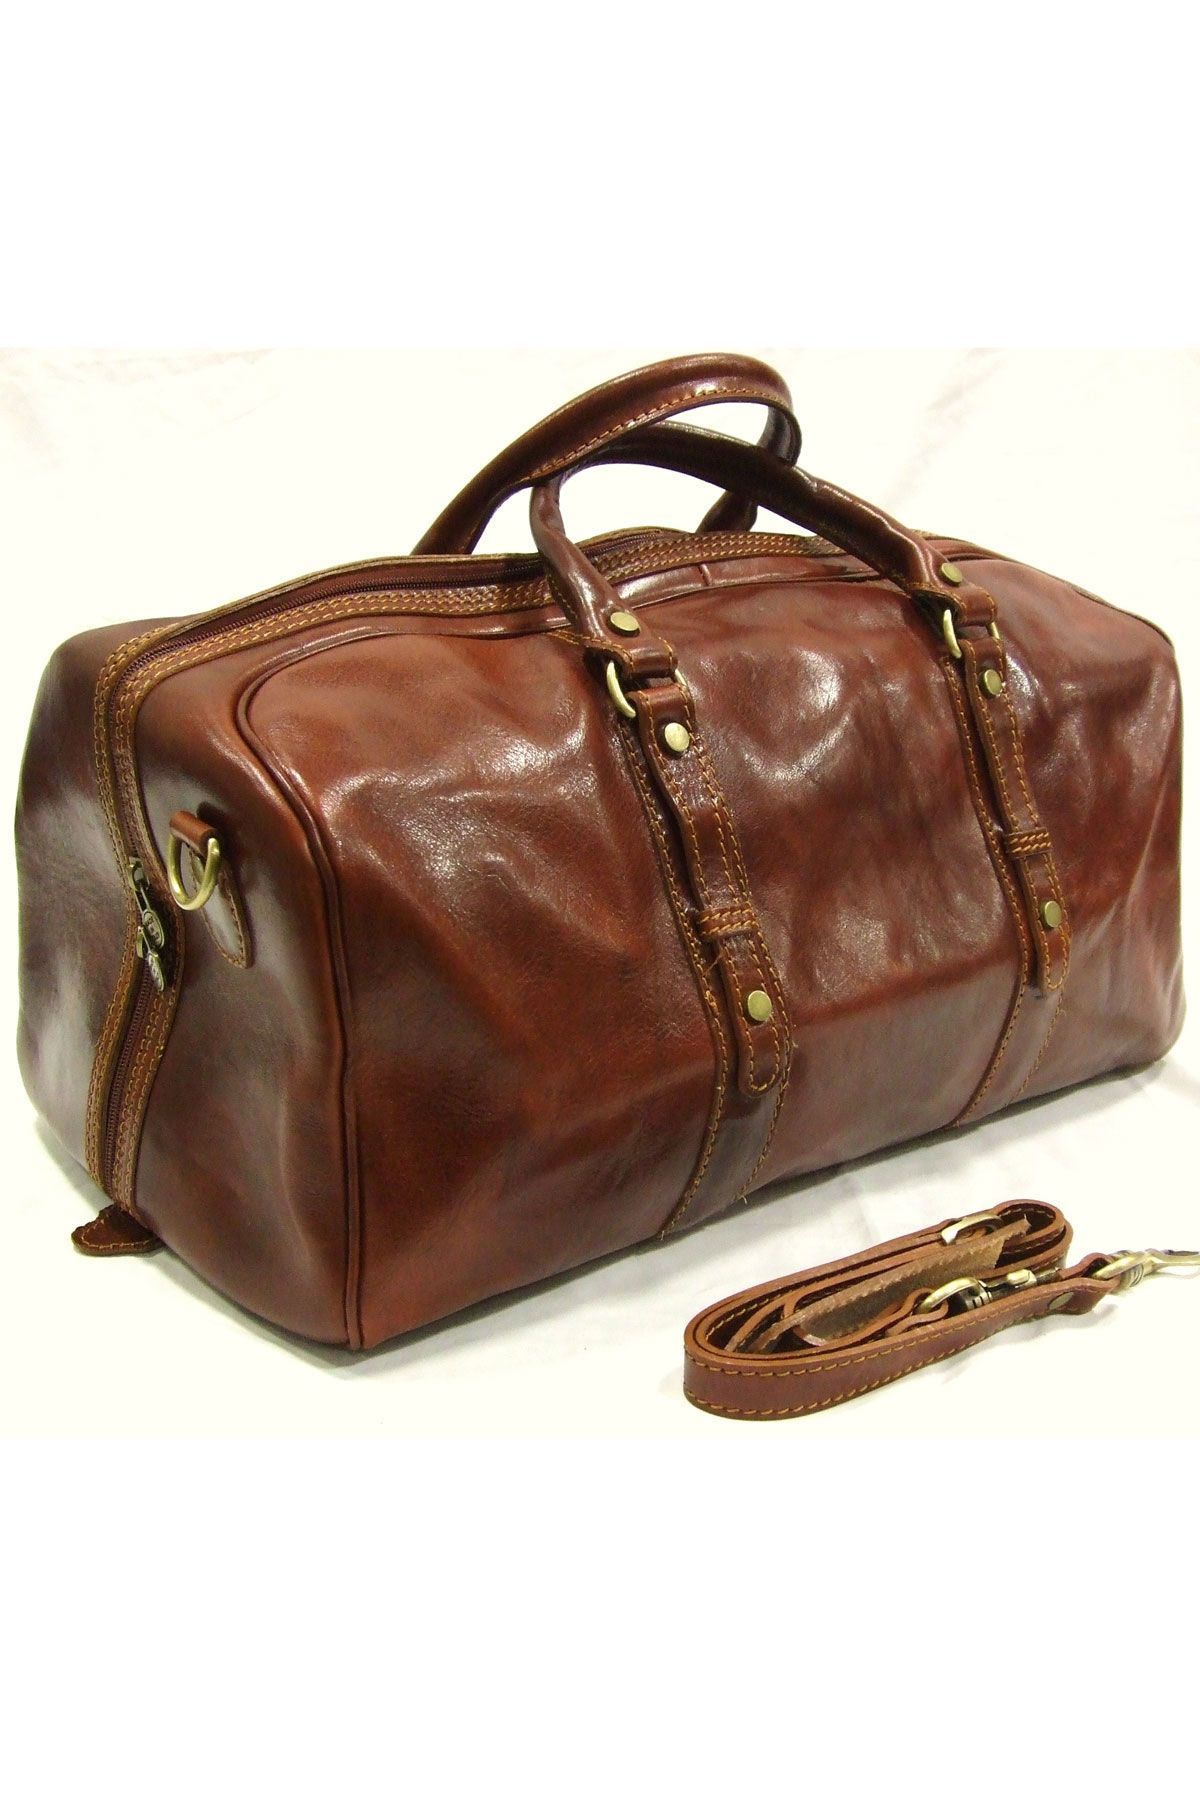 17 Best images about oh my oh my duffel bags on Pinterest ...